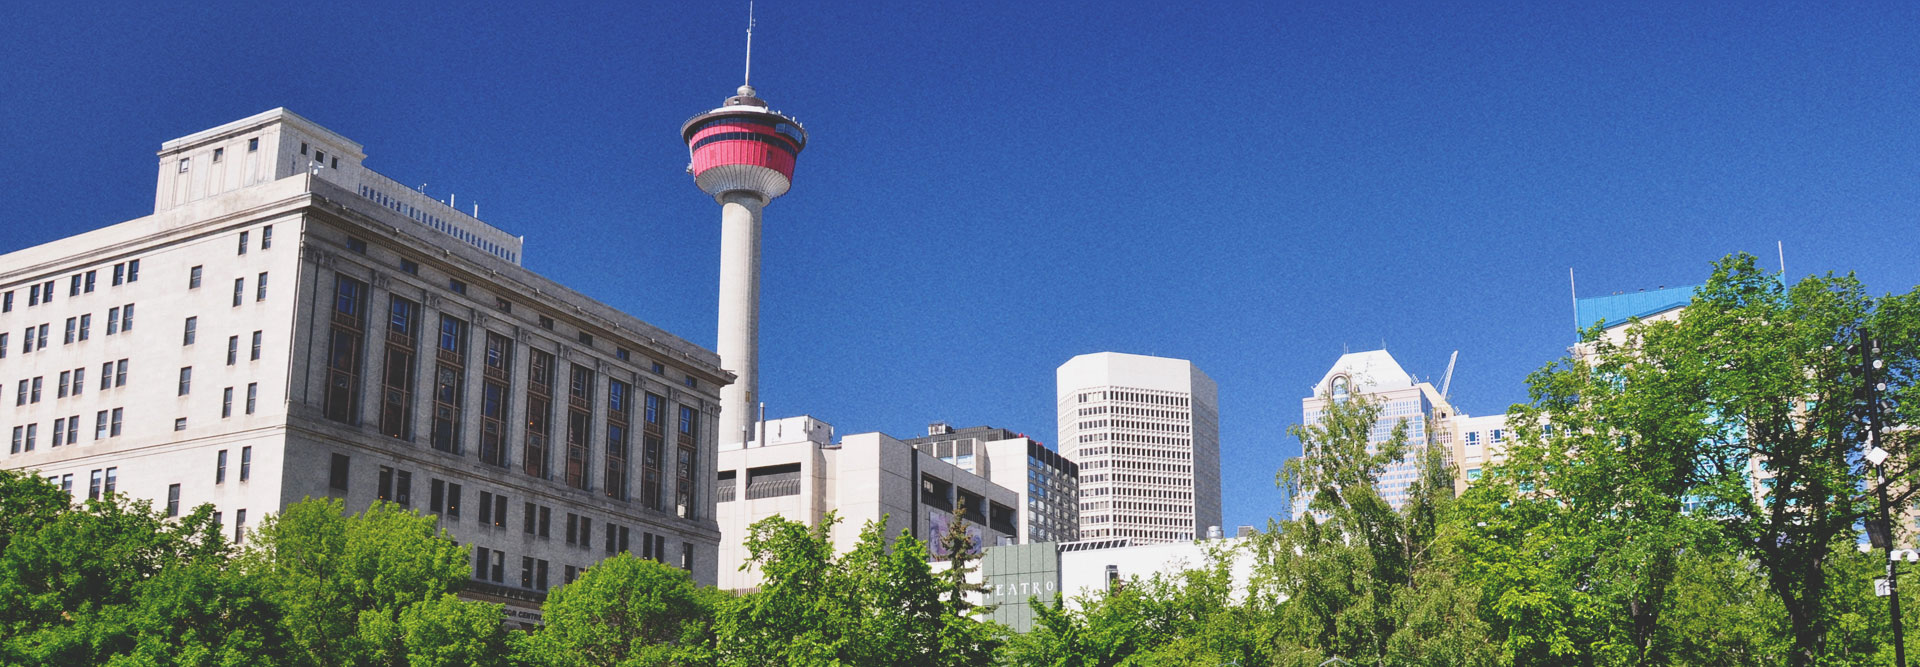 Calgary Trade Show Displays, Exhibits, Booths, Banners, Signage, Print